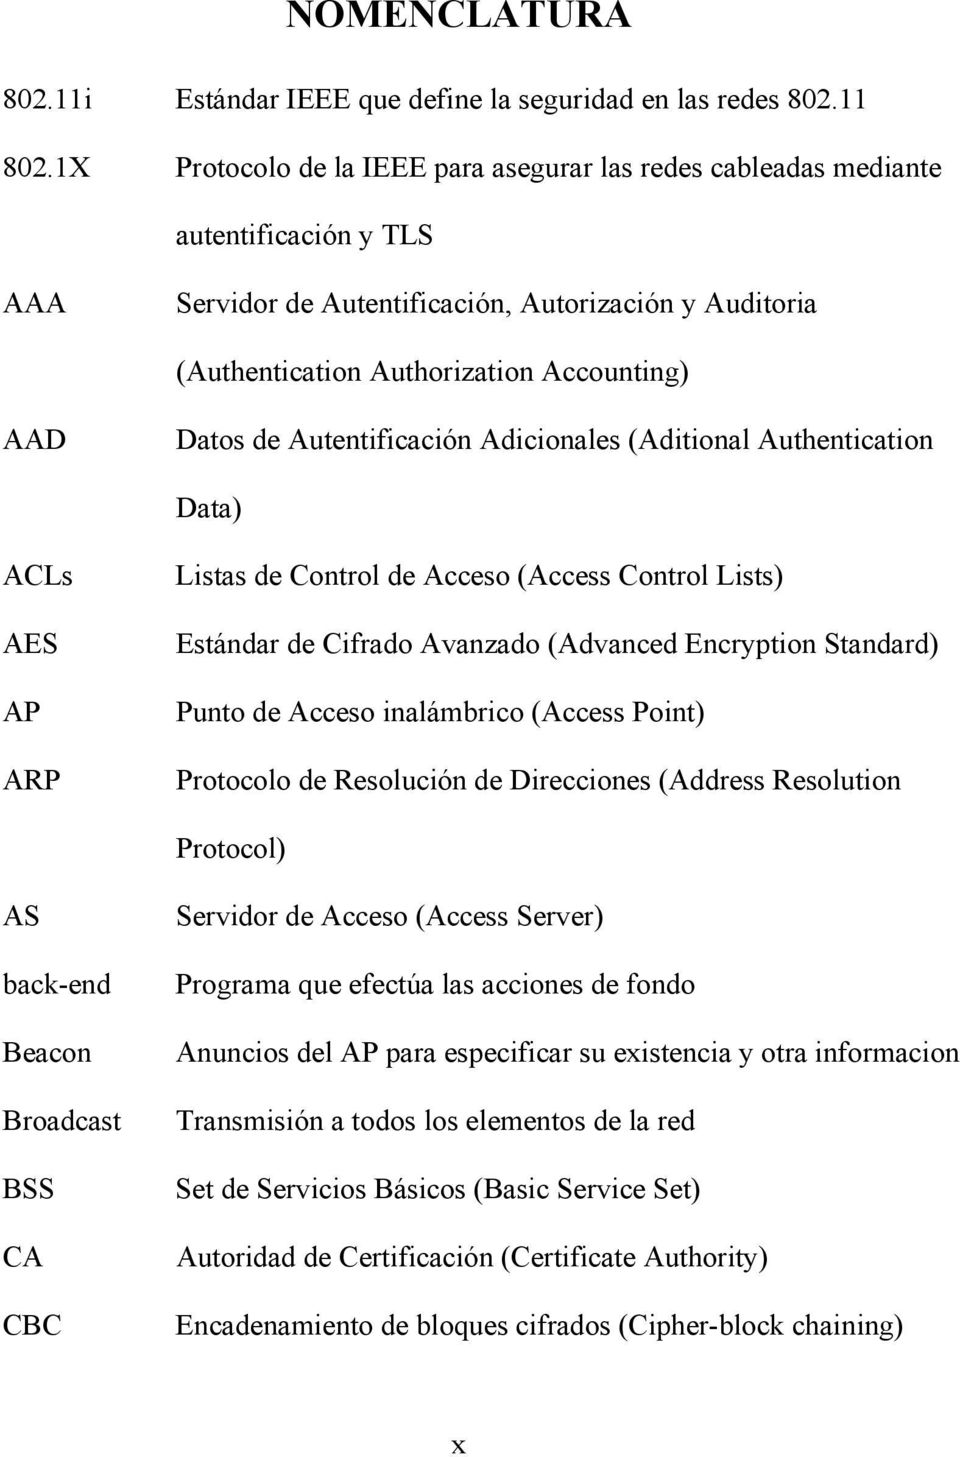 de Autentificación Adicionales (Aditional Authentication Data) ACLs AES AP ARP Listas de Control de Acceso (Access Control Lists) Estándar de Cifrado Avanzado (Advanced Encryption Standard) Punto de